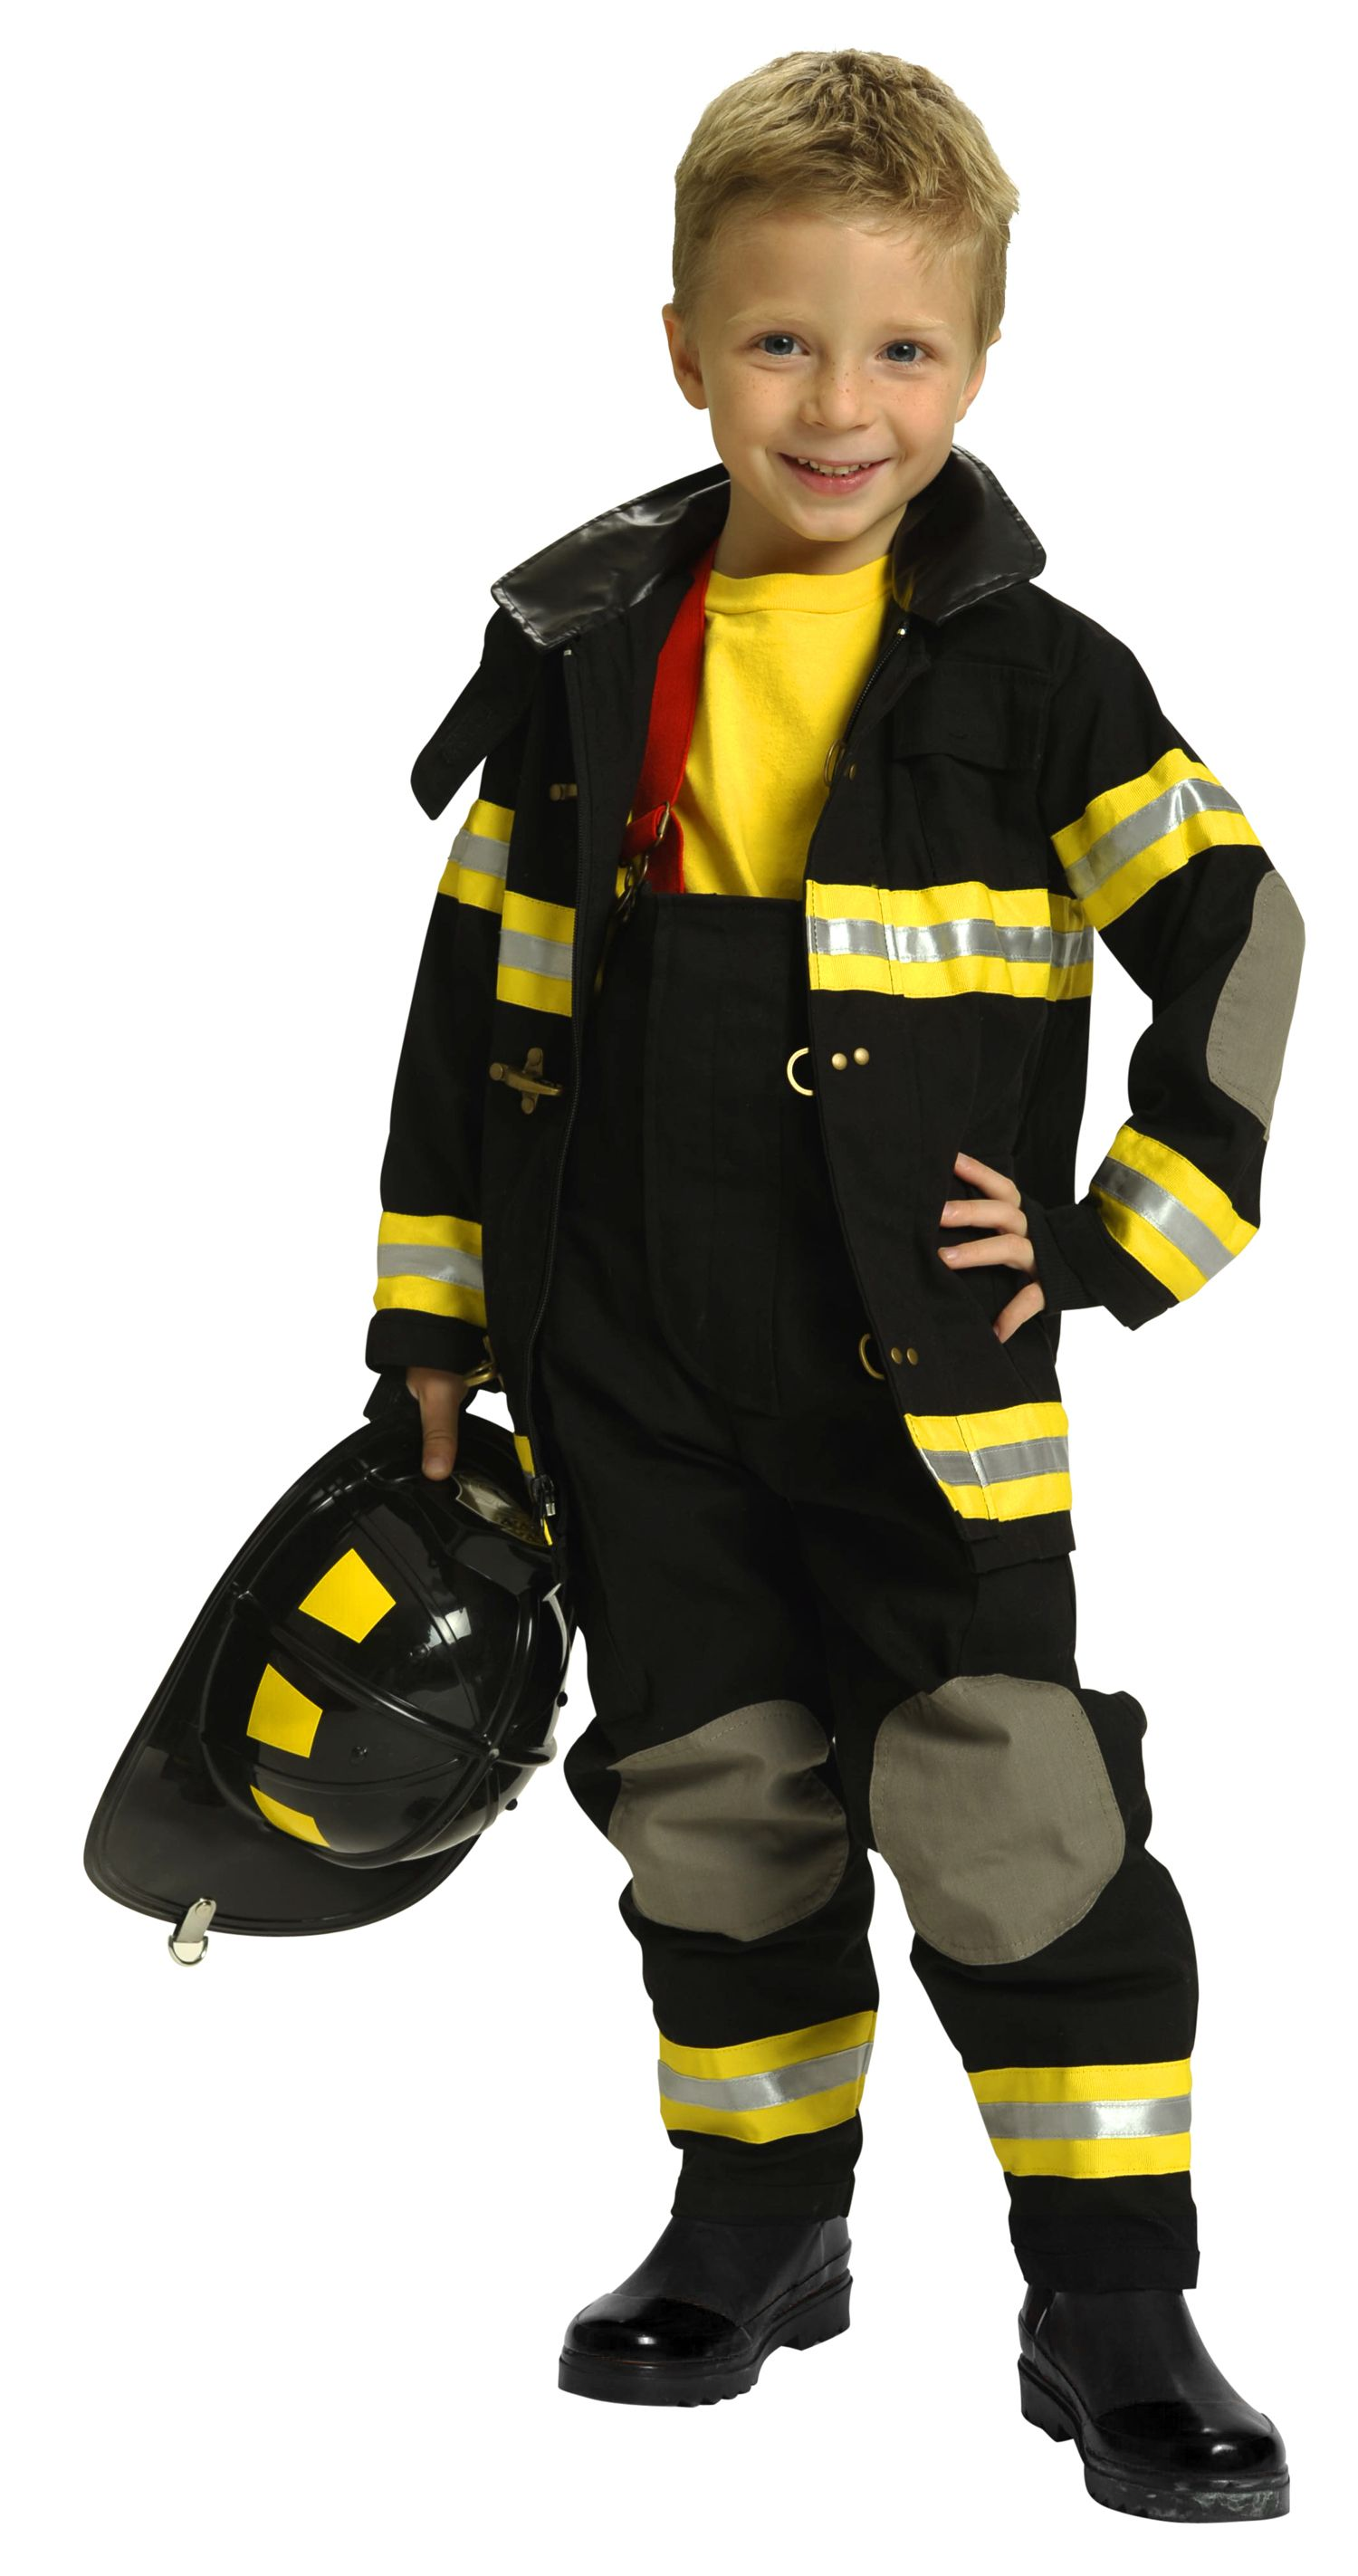 Aeromax carries occupationbased dressup products that